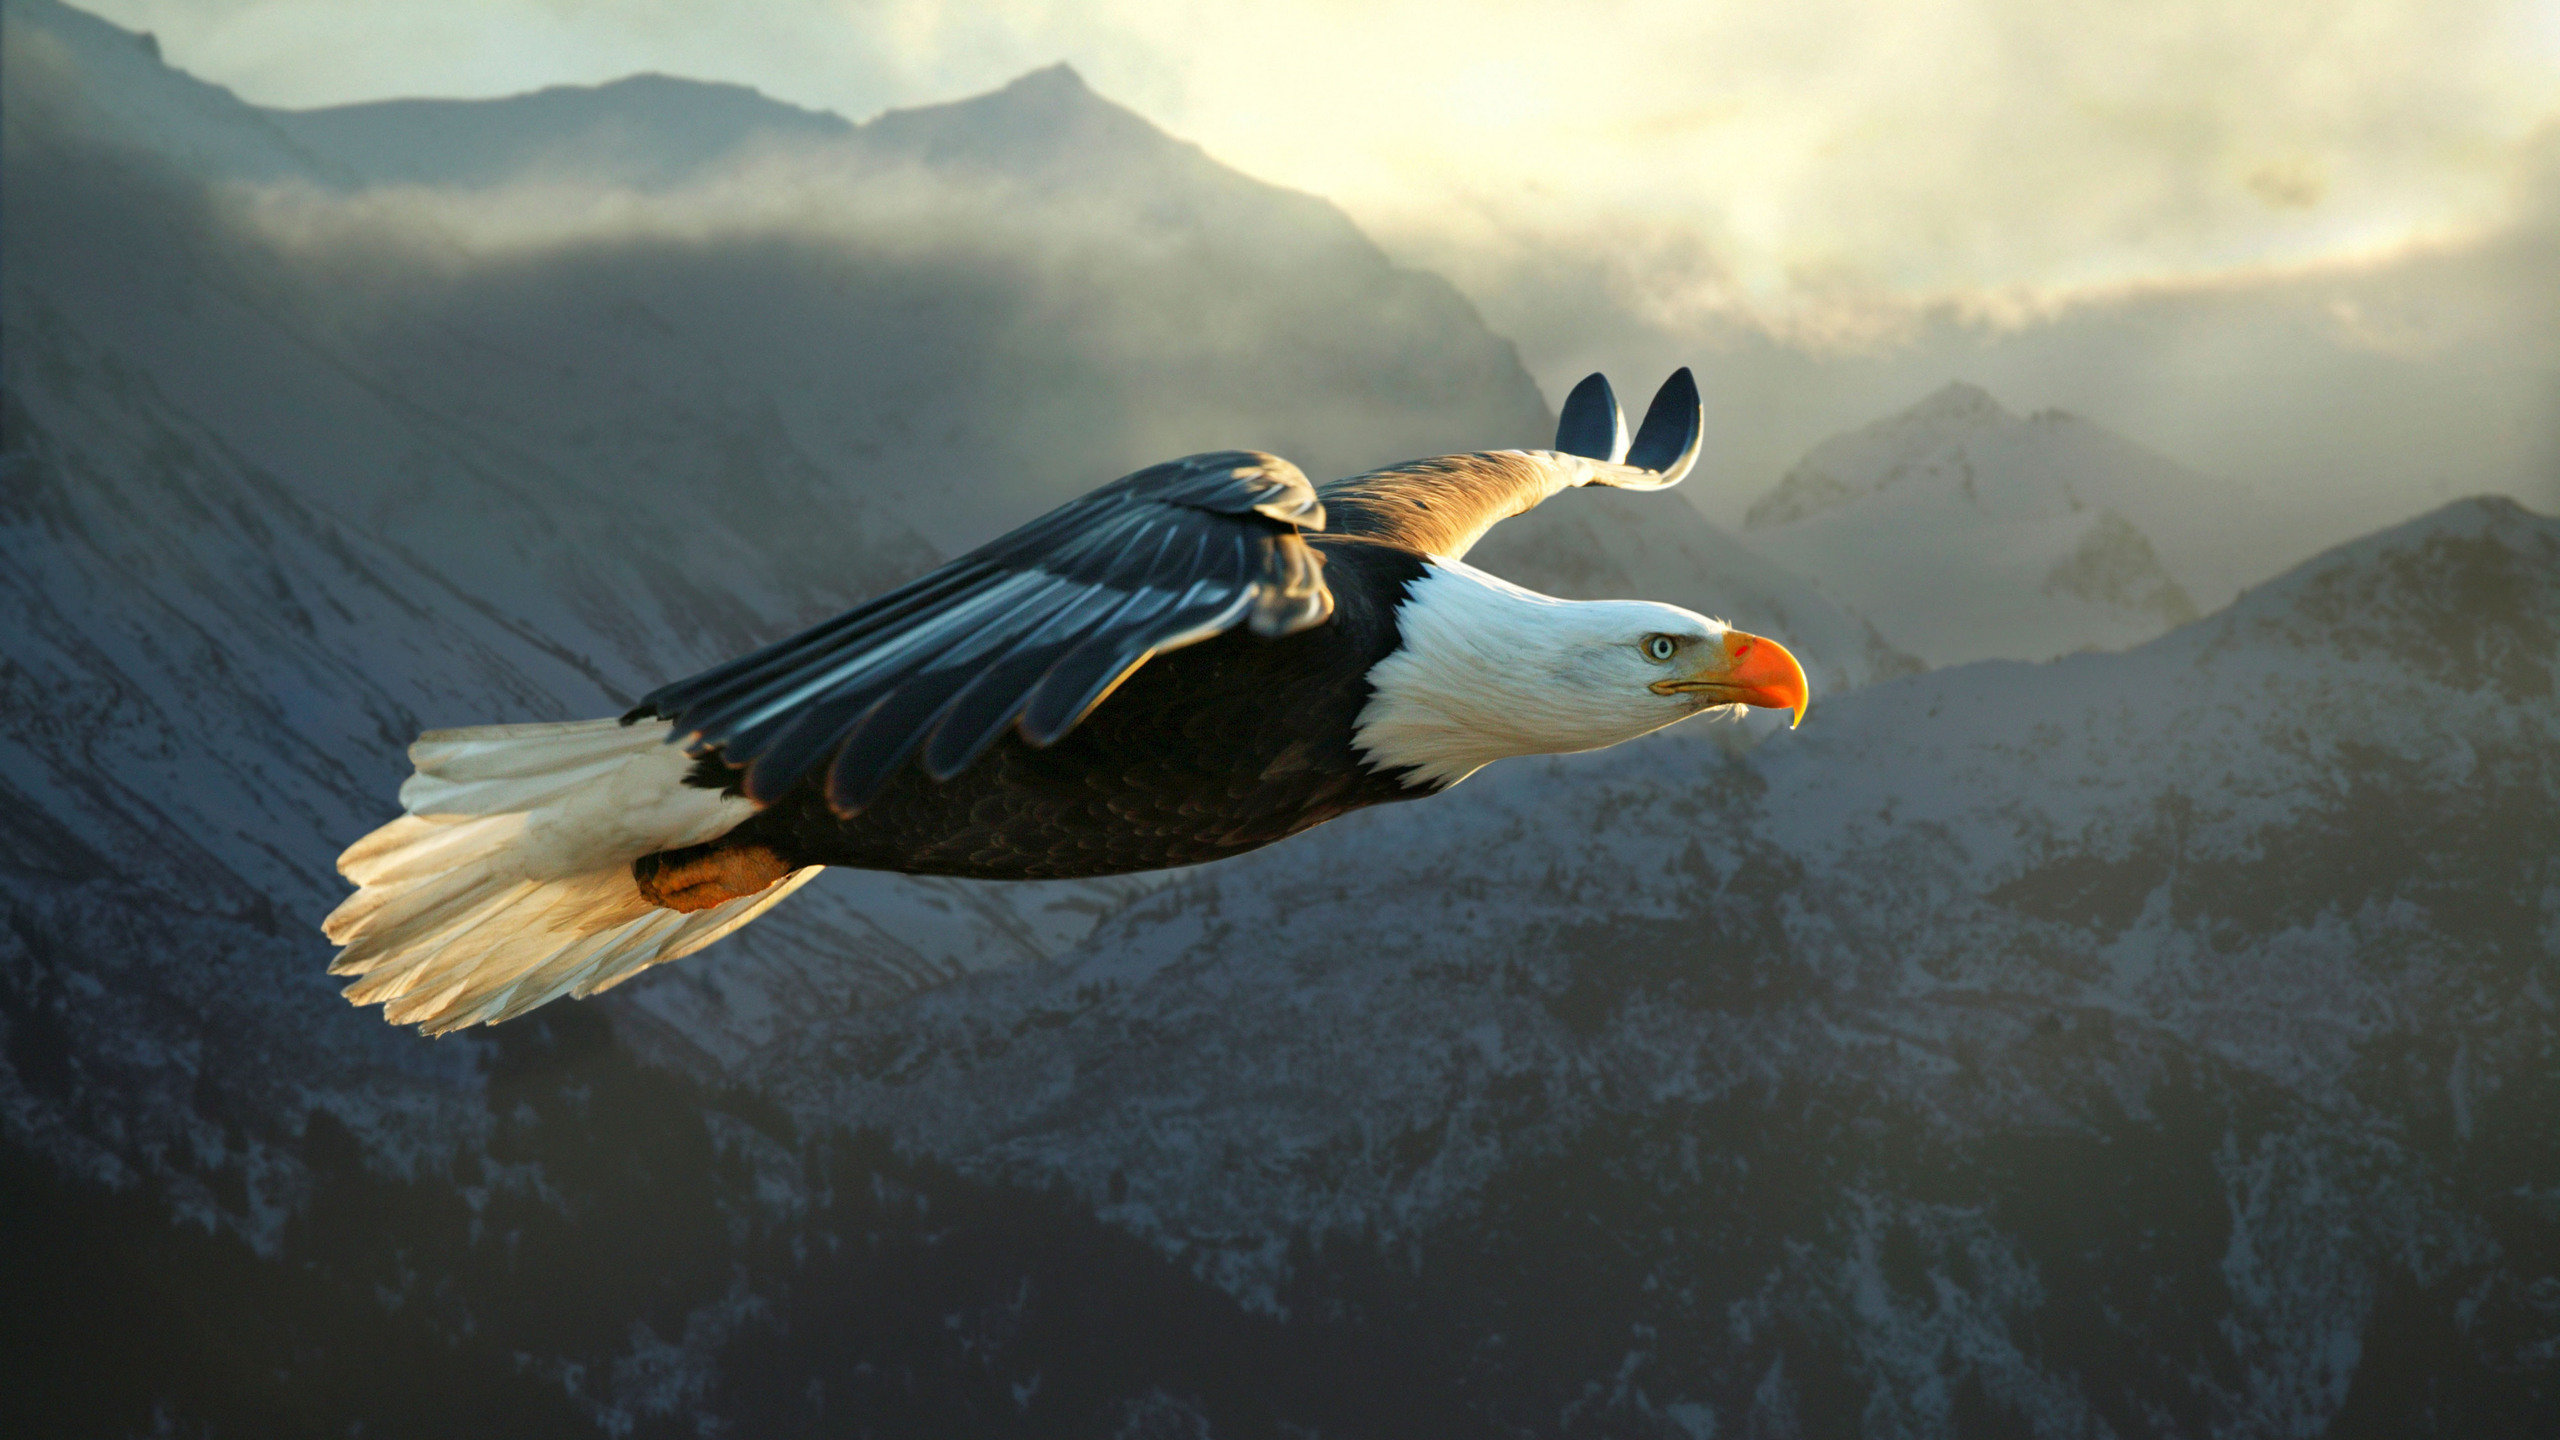 High resolution American Bald Eagle hd 2560x1440 background ID:68613 for computer